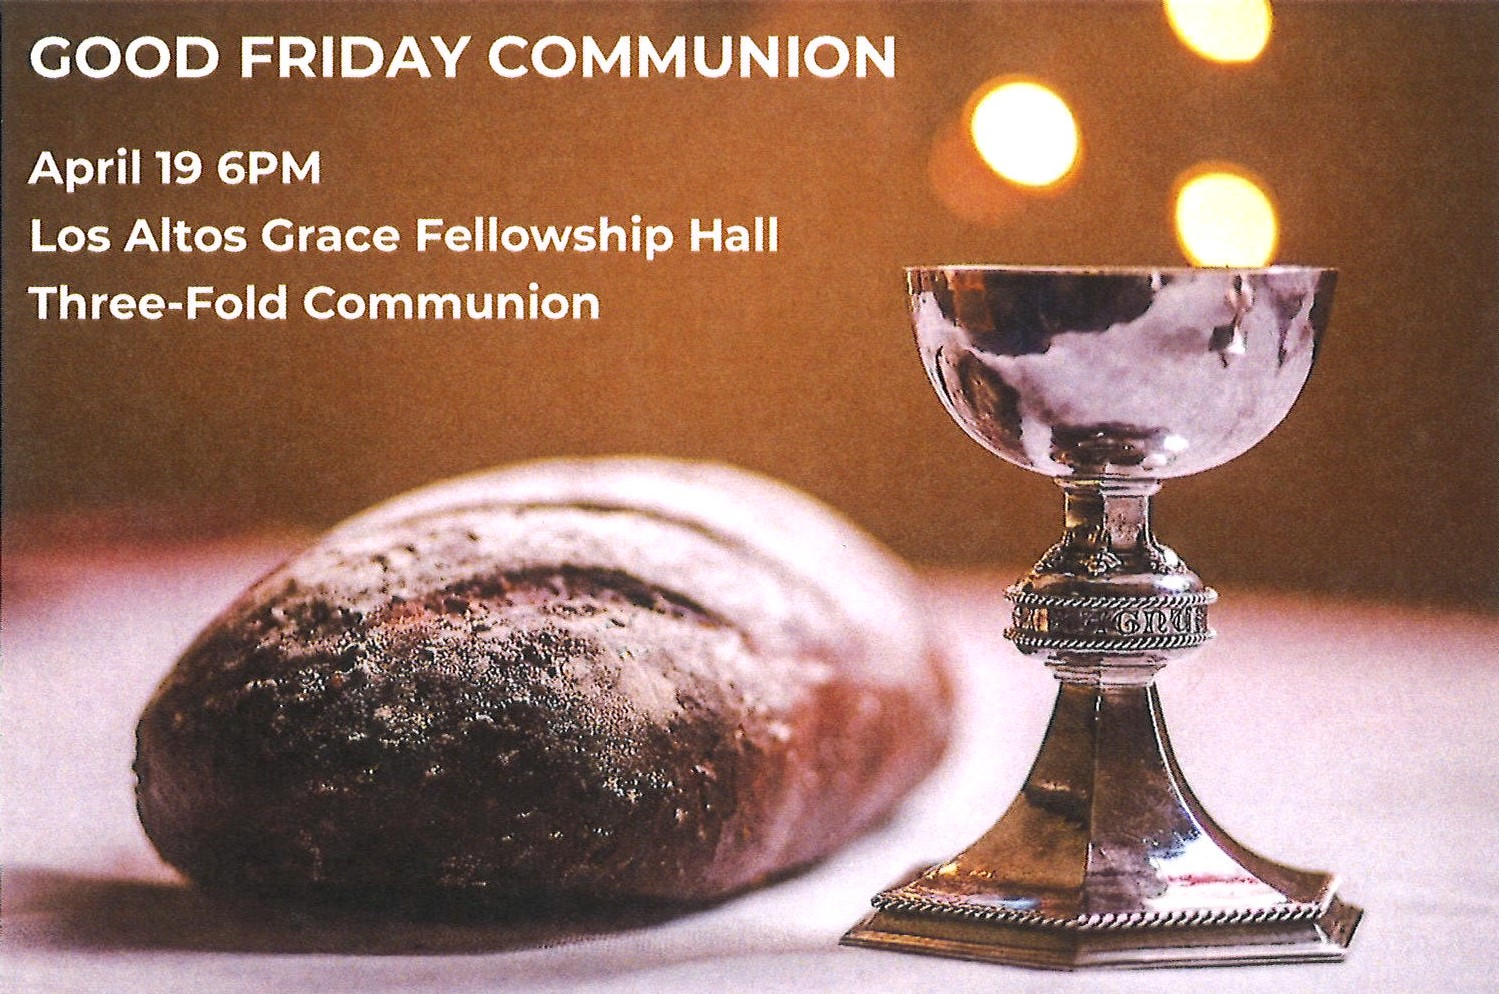 Good Friday Communion